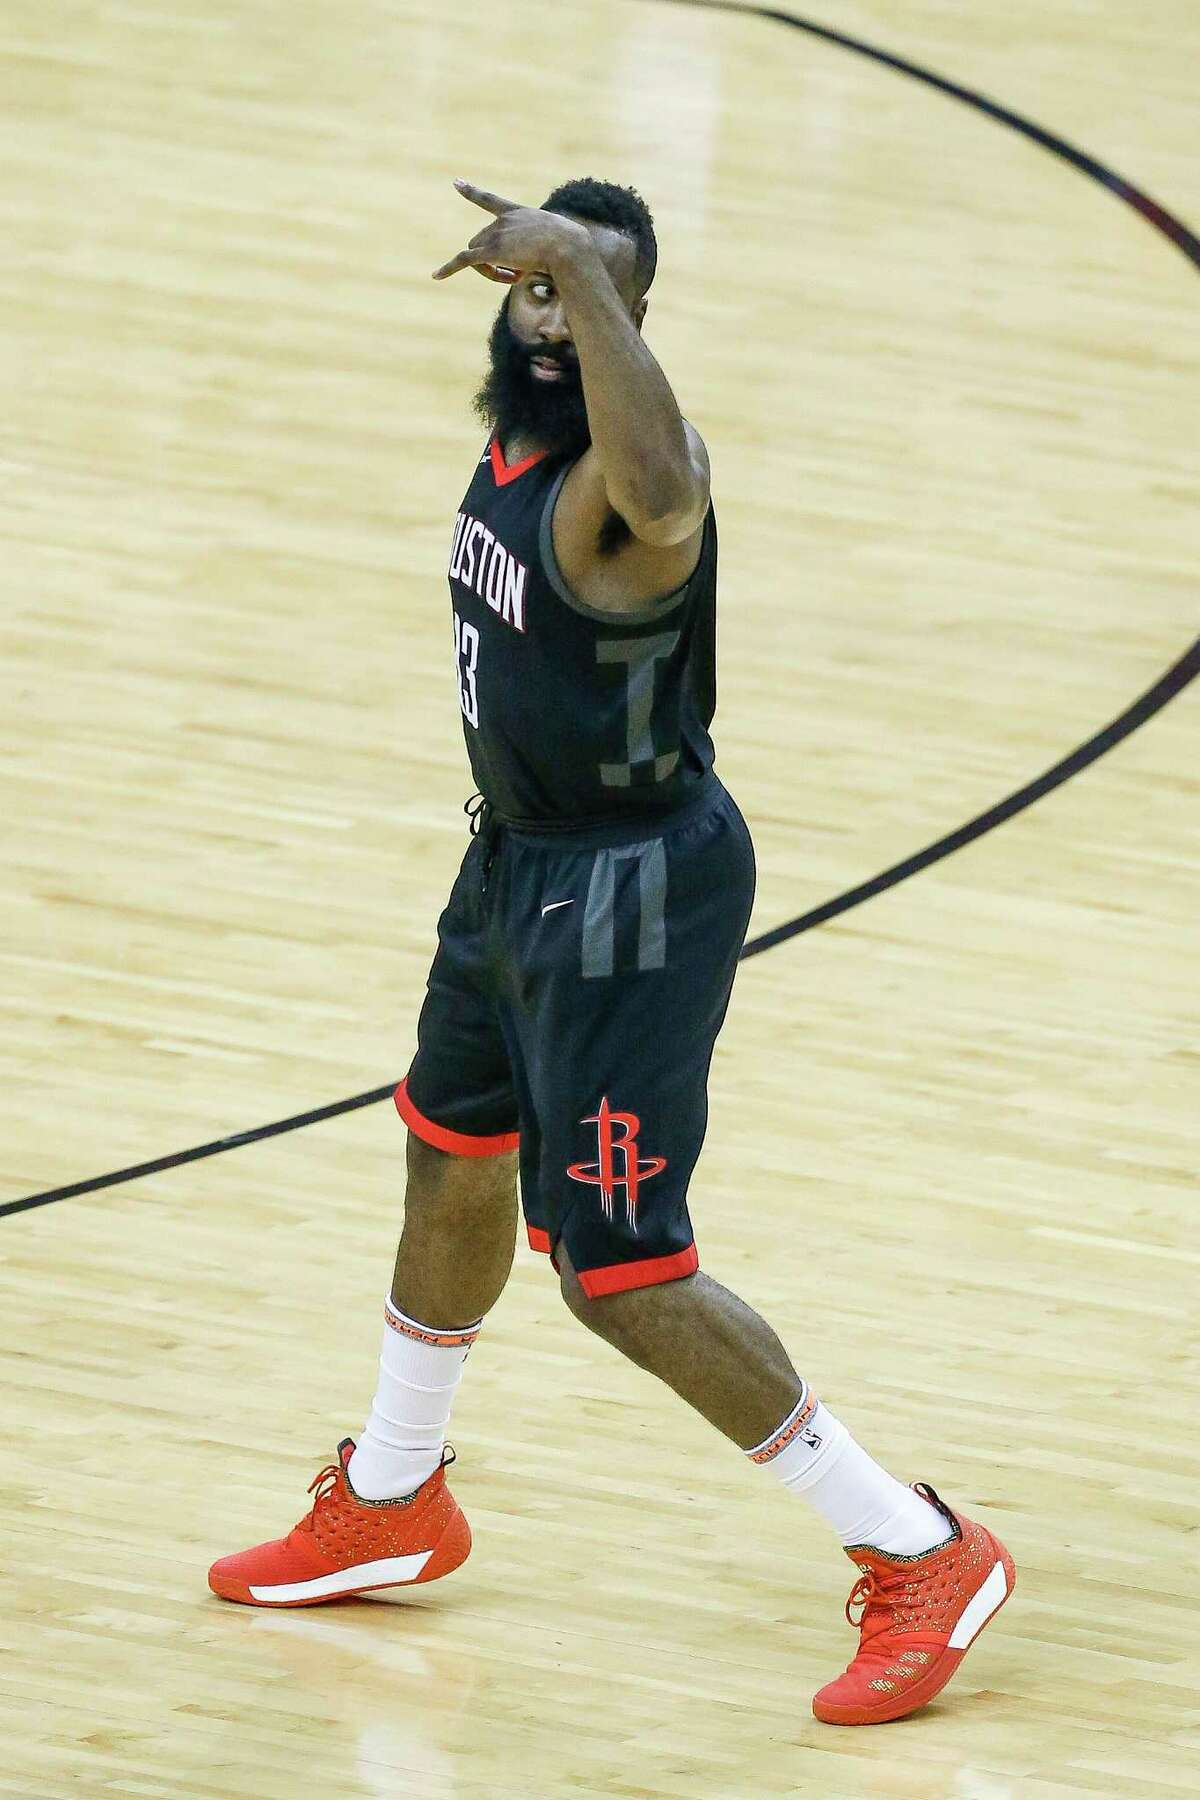 Houston Rockets guard James Harden (13) reacts after hitting a three-pointer during the first half of Game 1 of the Western Conference Finals at the Toyota Center Monday, May 14, 2018 in Houston.